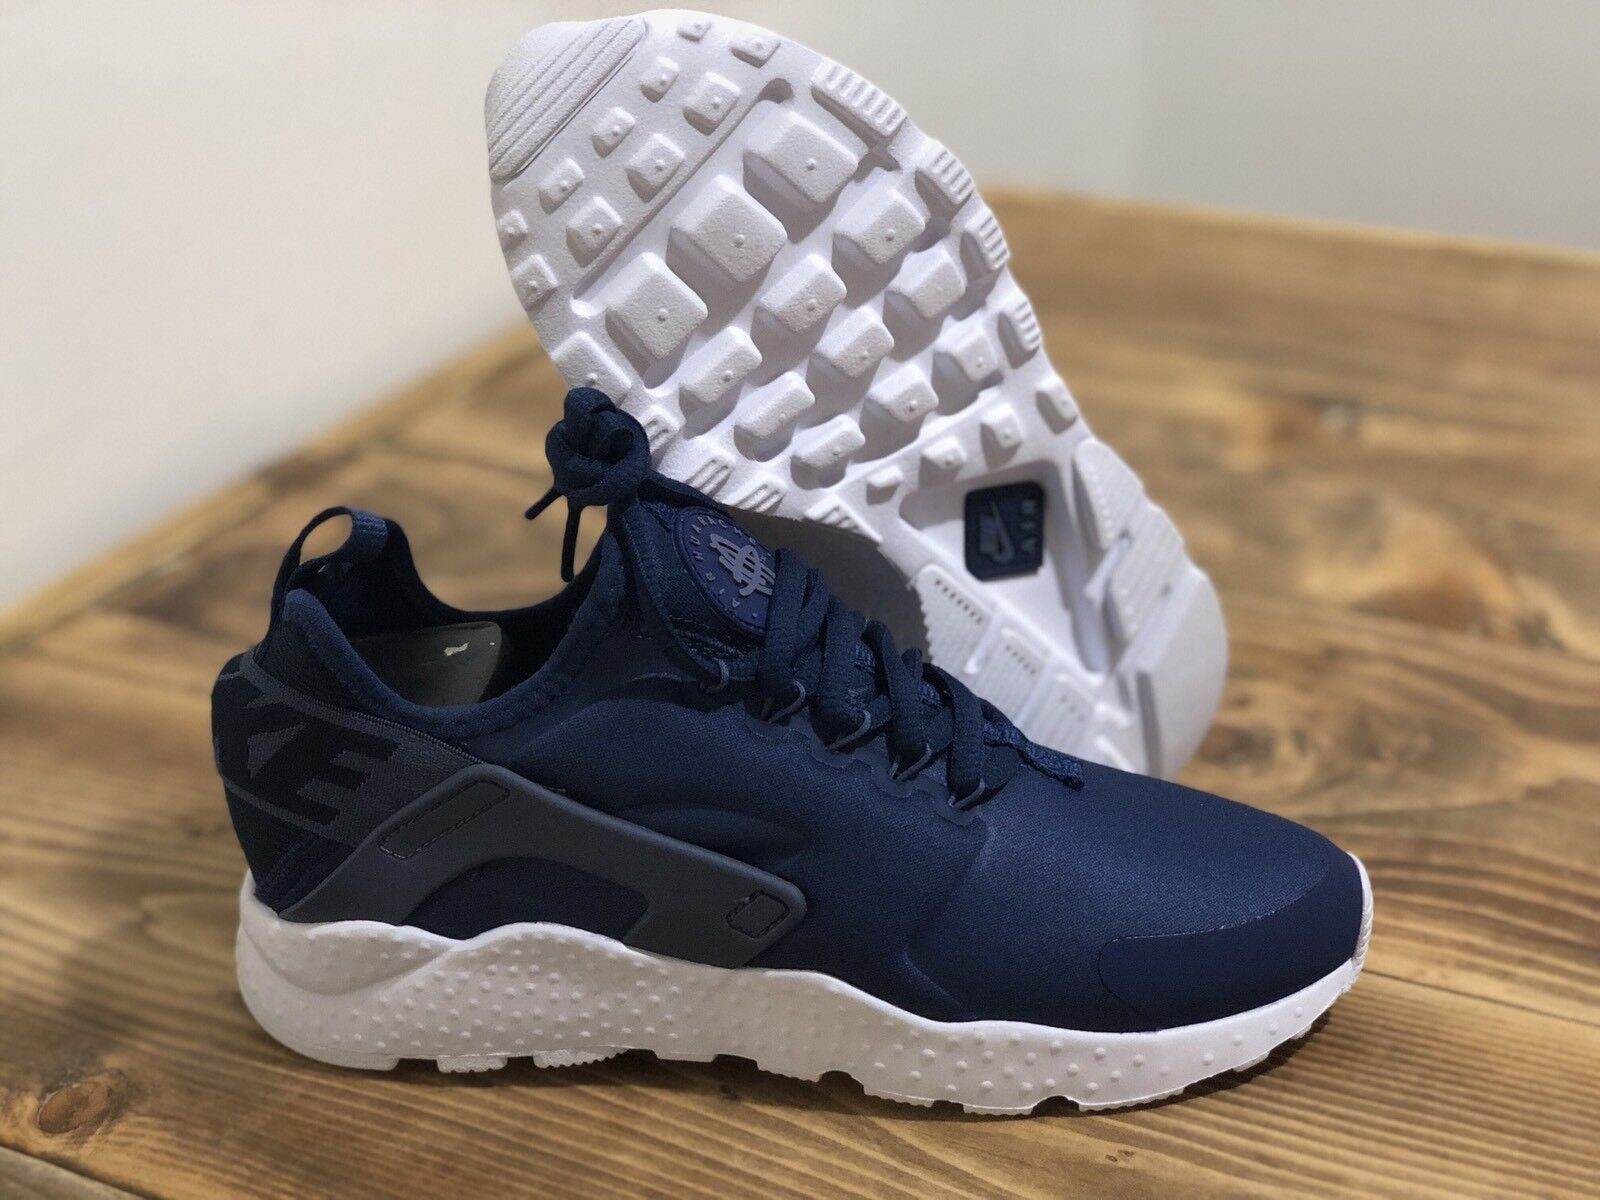 NIke Air Huarache Ultra Navy bluee OBSIDIAN Women's Sz 6  819151-404